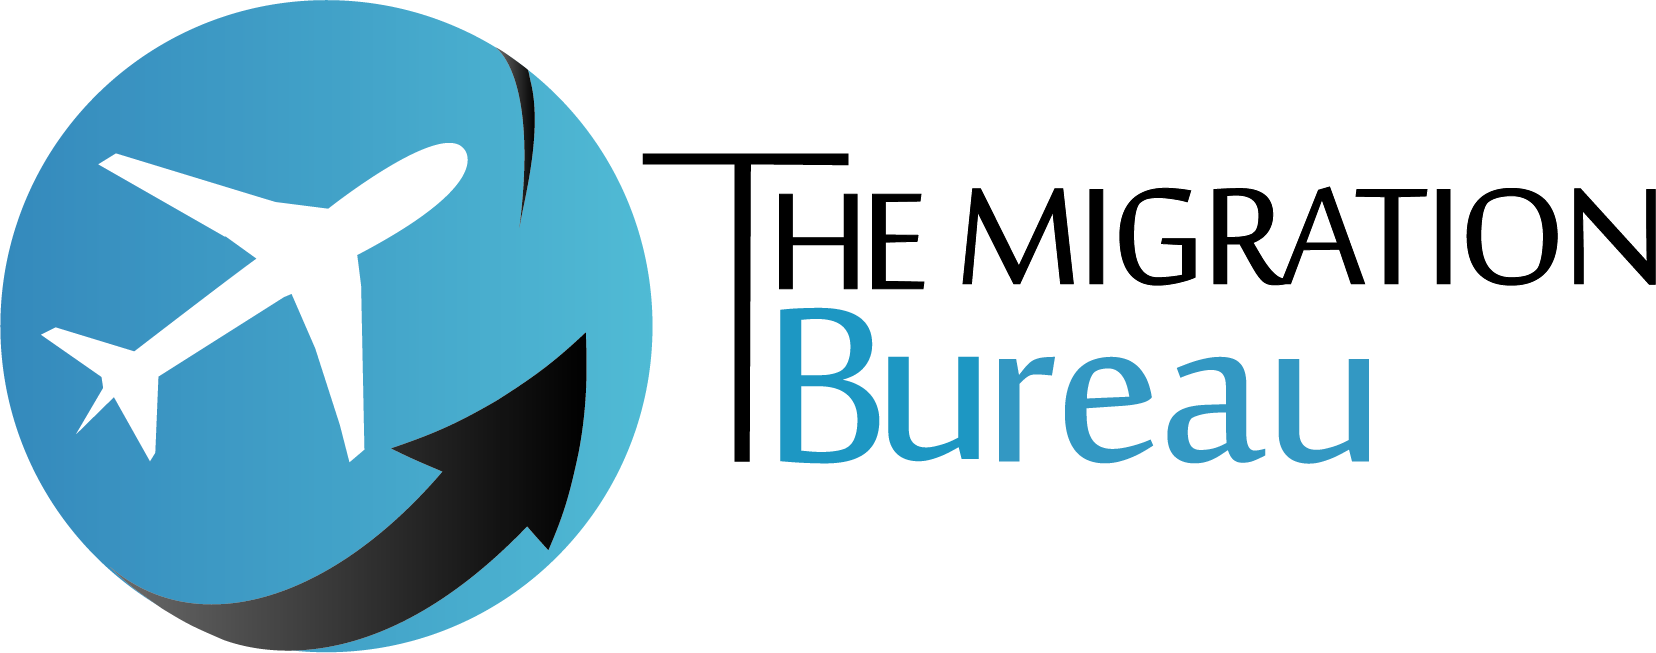 Logo of our company, The Migration Bureau. We are helping with company formation in Poland and immigration services.